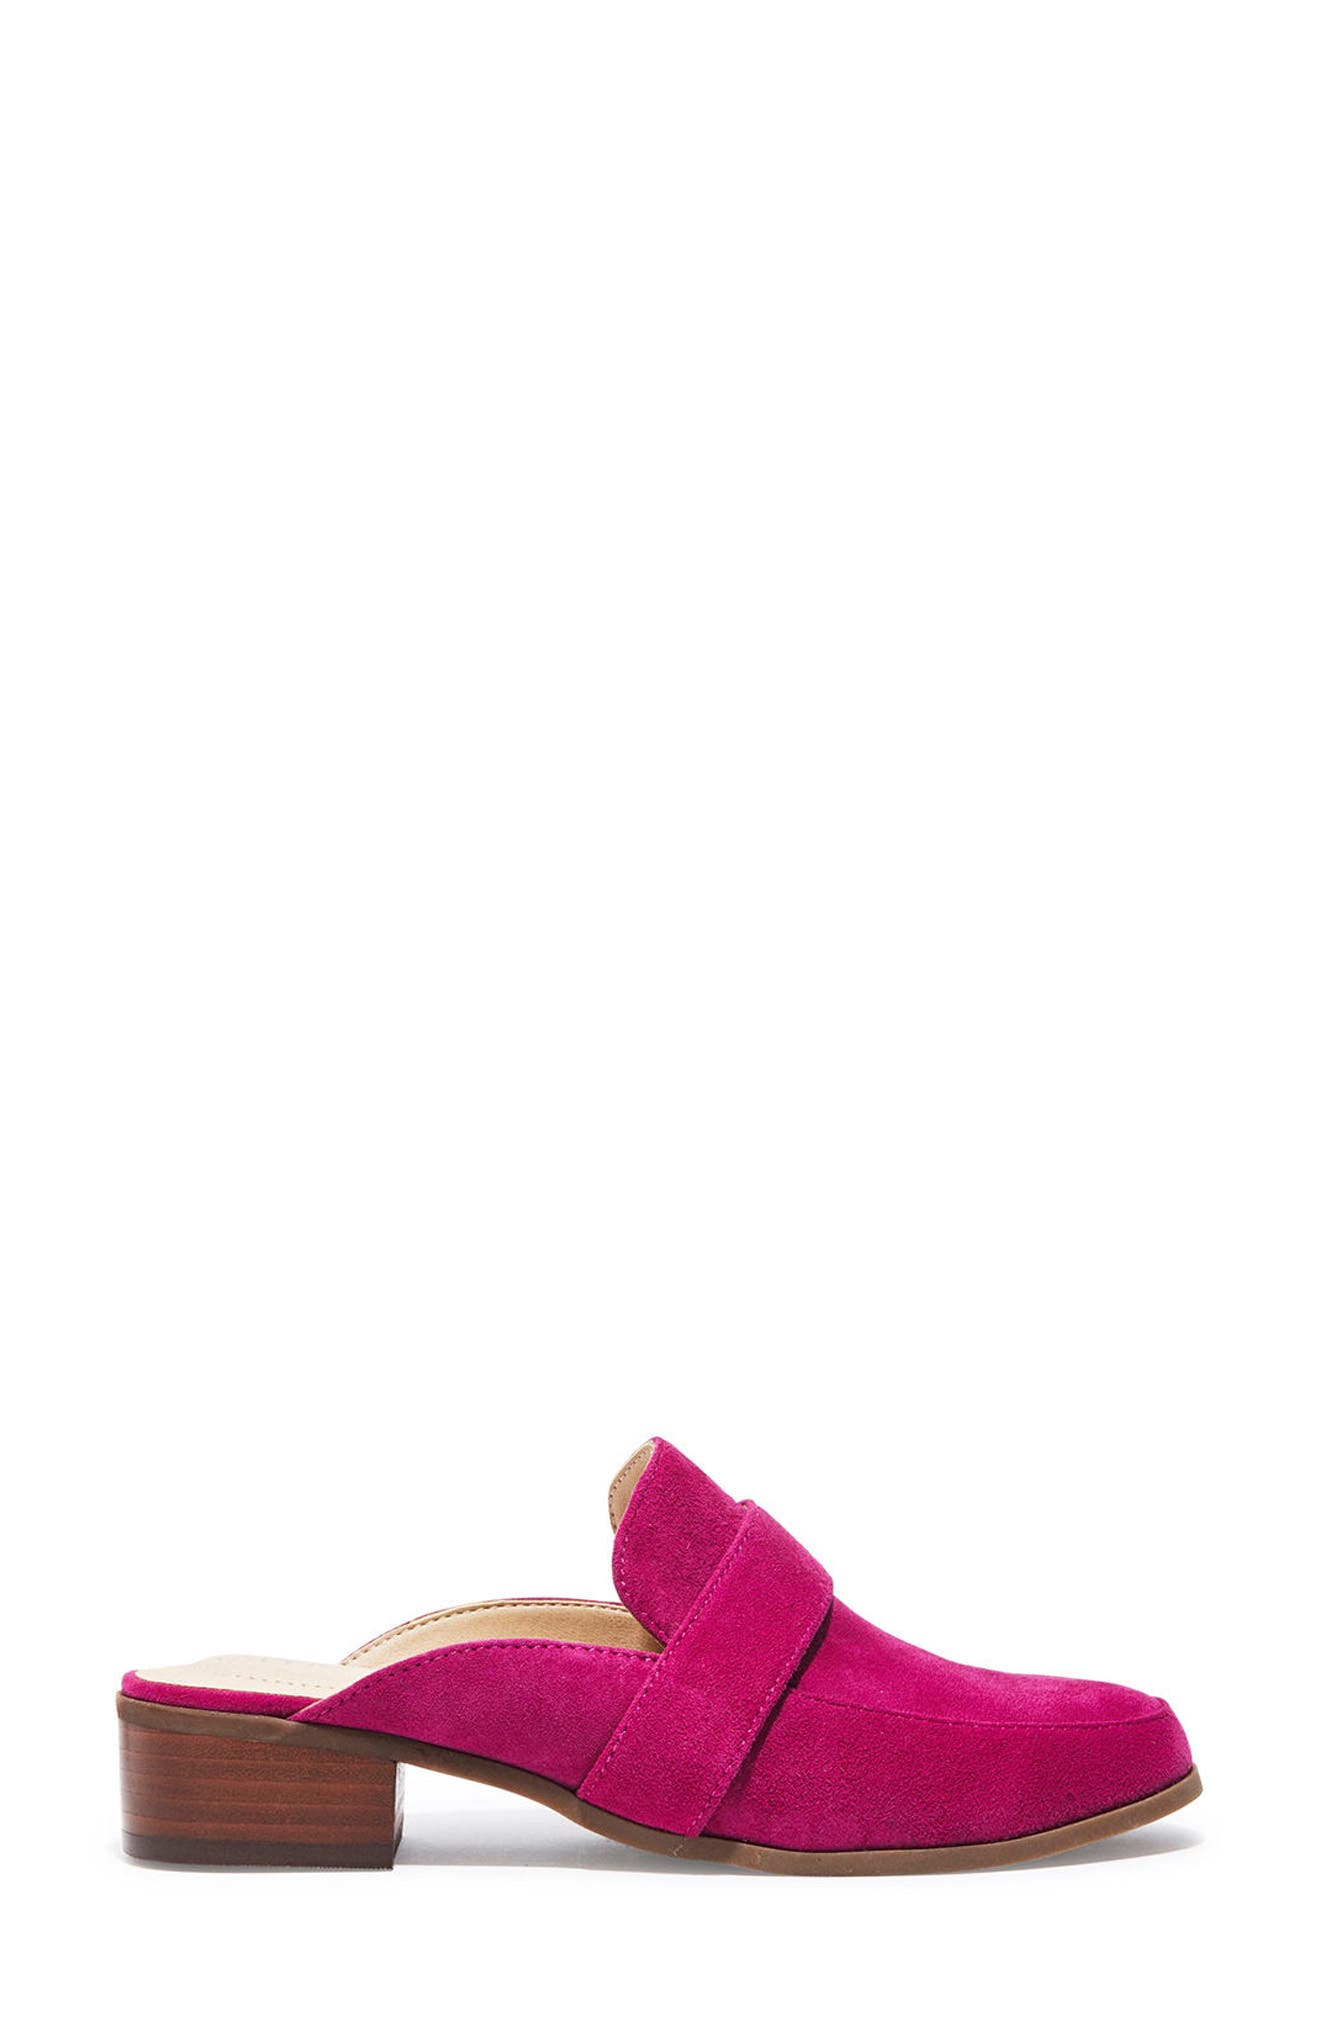 Jada Loafer Mule,                             Alternate thumbnail 3, color,                             Fuchsia Suede